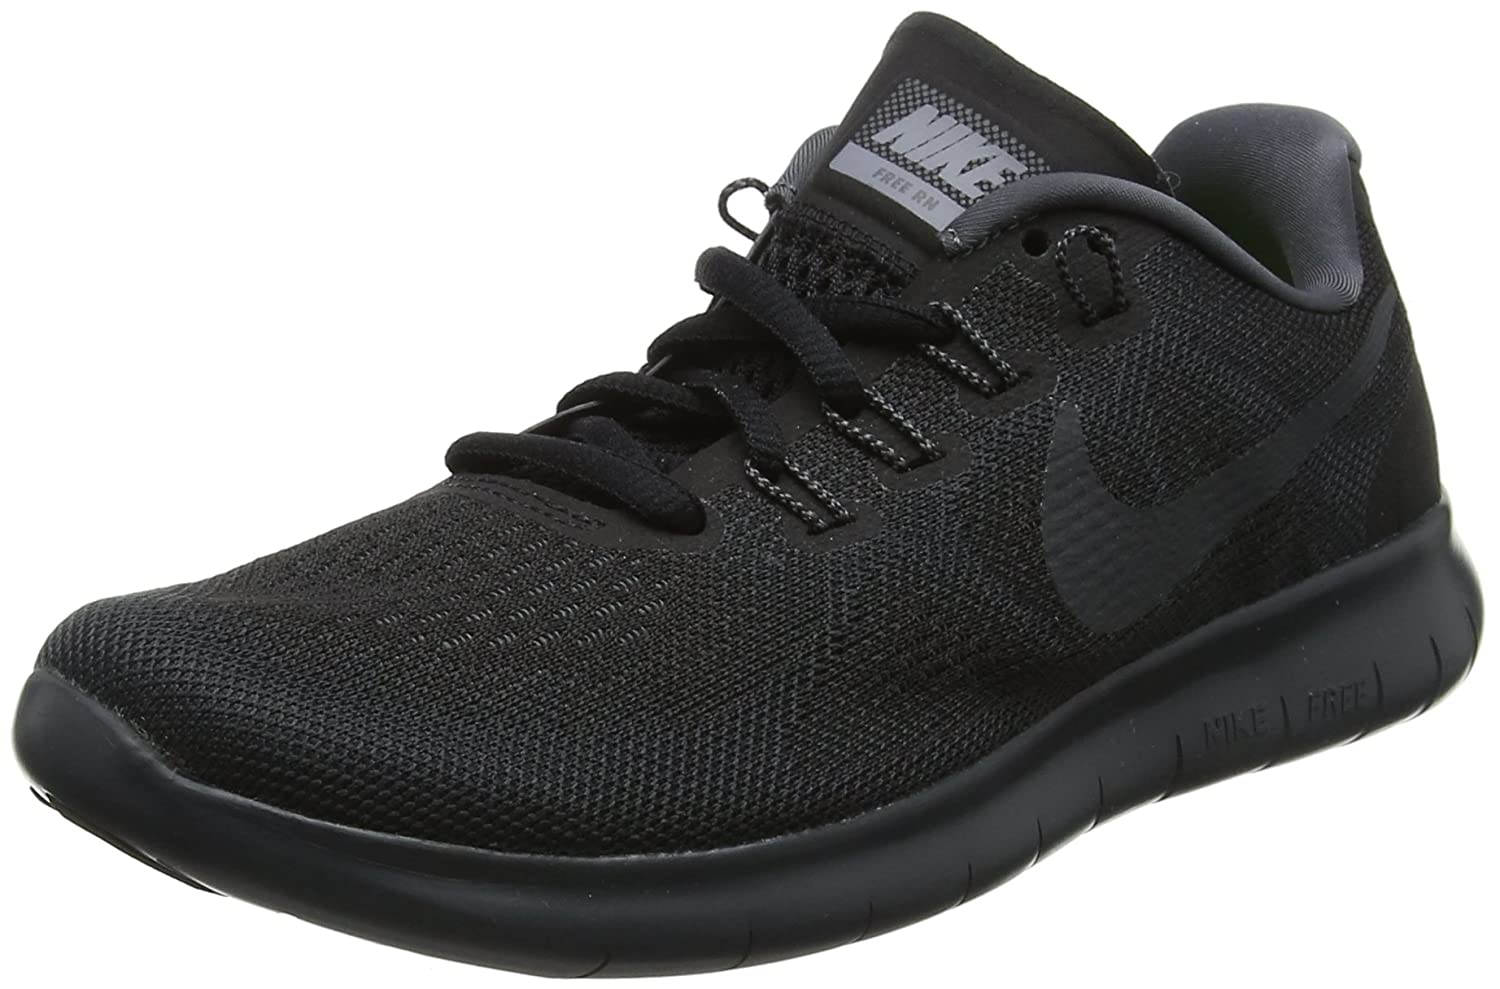 NIKE Women's Free RN 2017 Running Shoe B01K0NRL8A 12 B(M) US|black